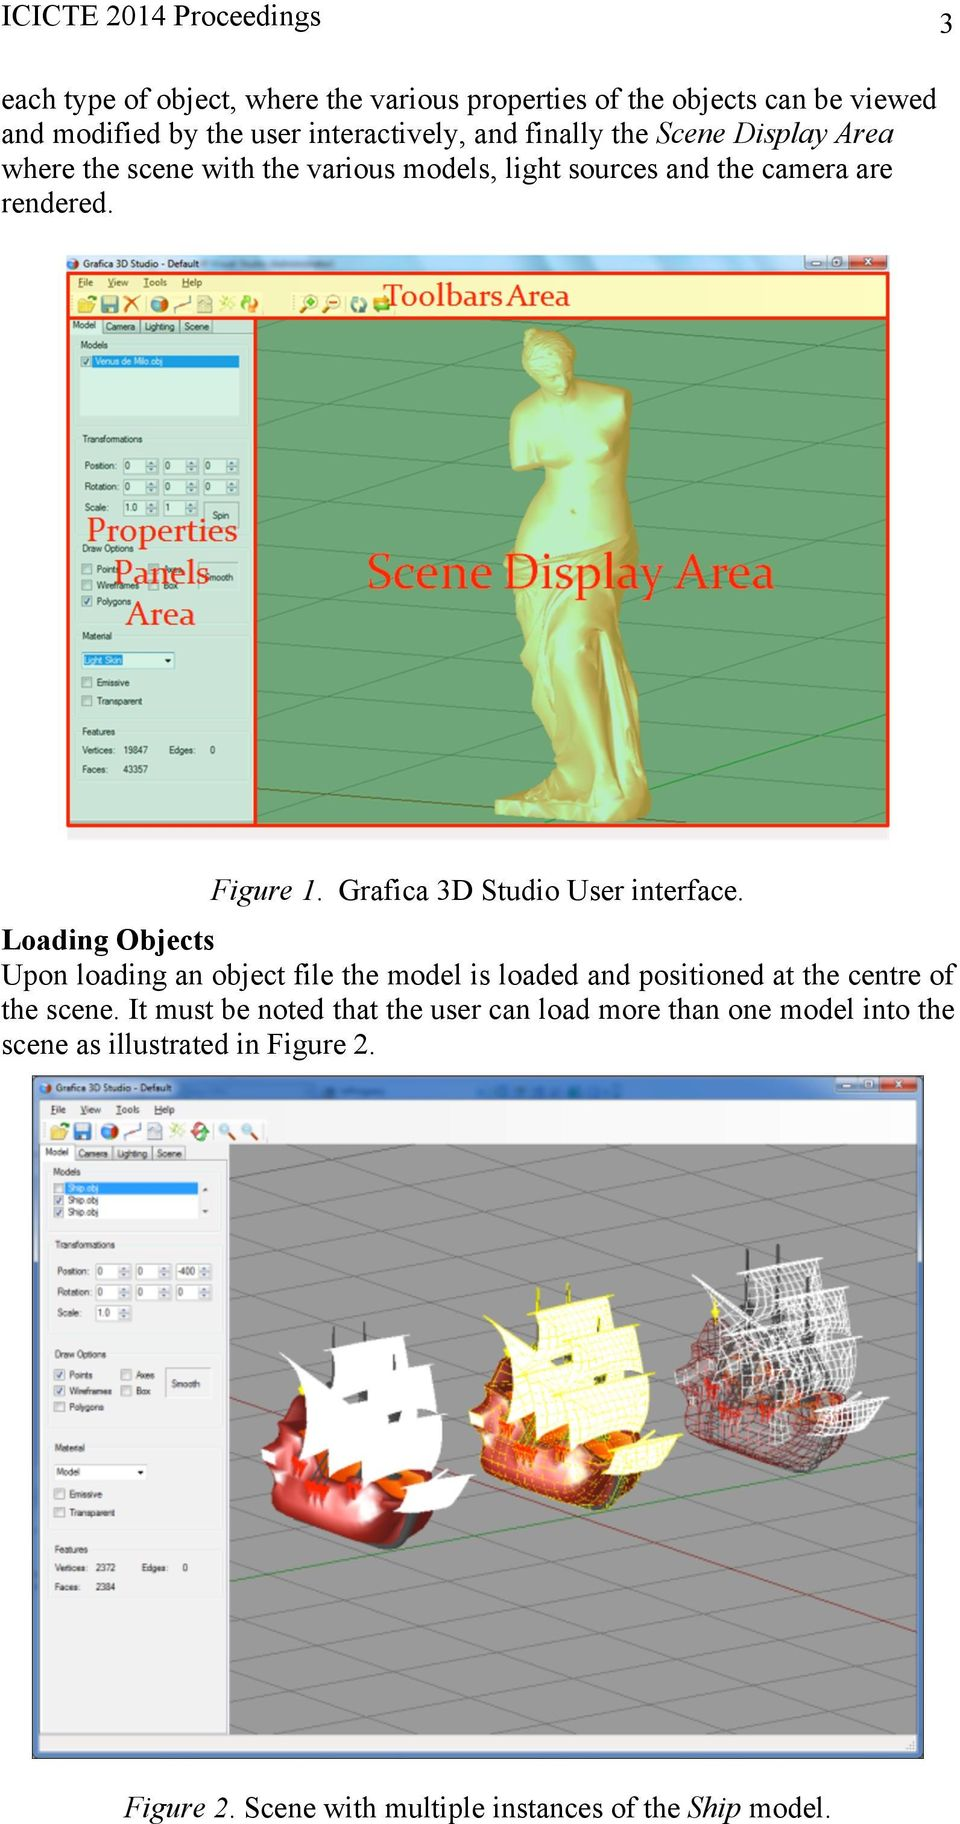 Grafica 3D Studio User interface. Loading Objects Upon loading an object file the model is loaded and positioned at the centre of the scene.